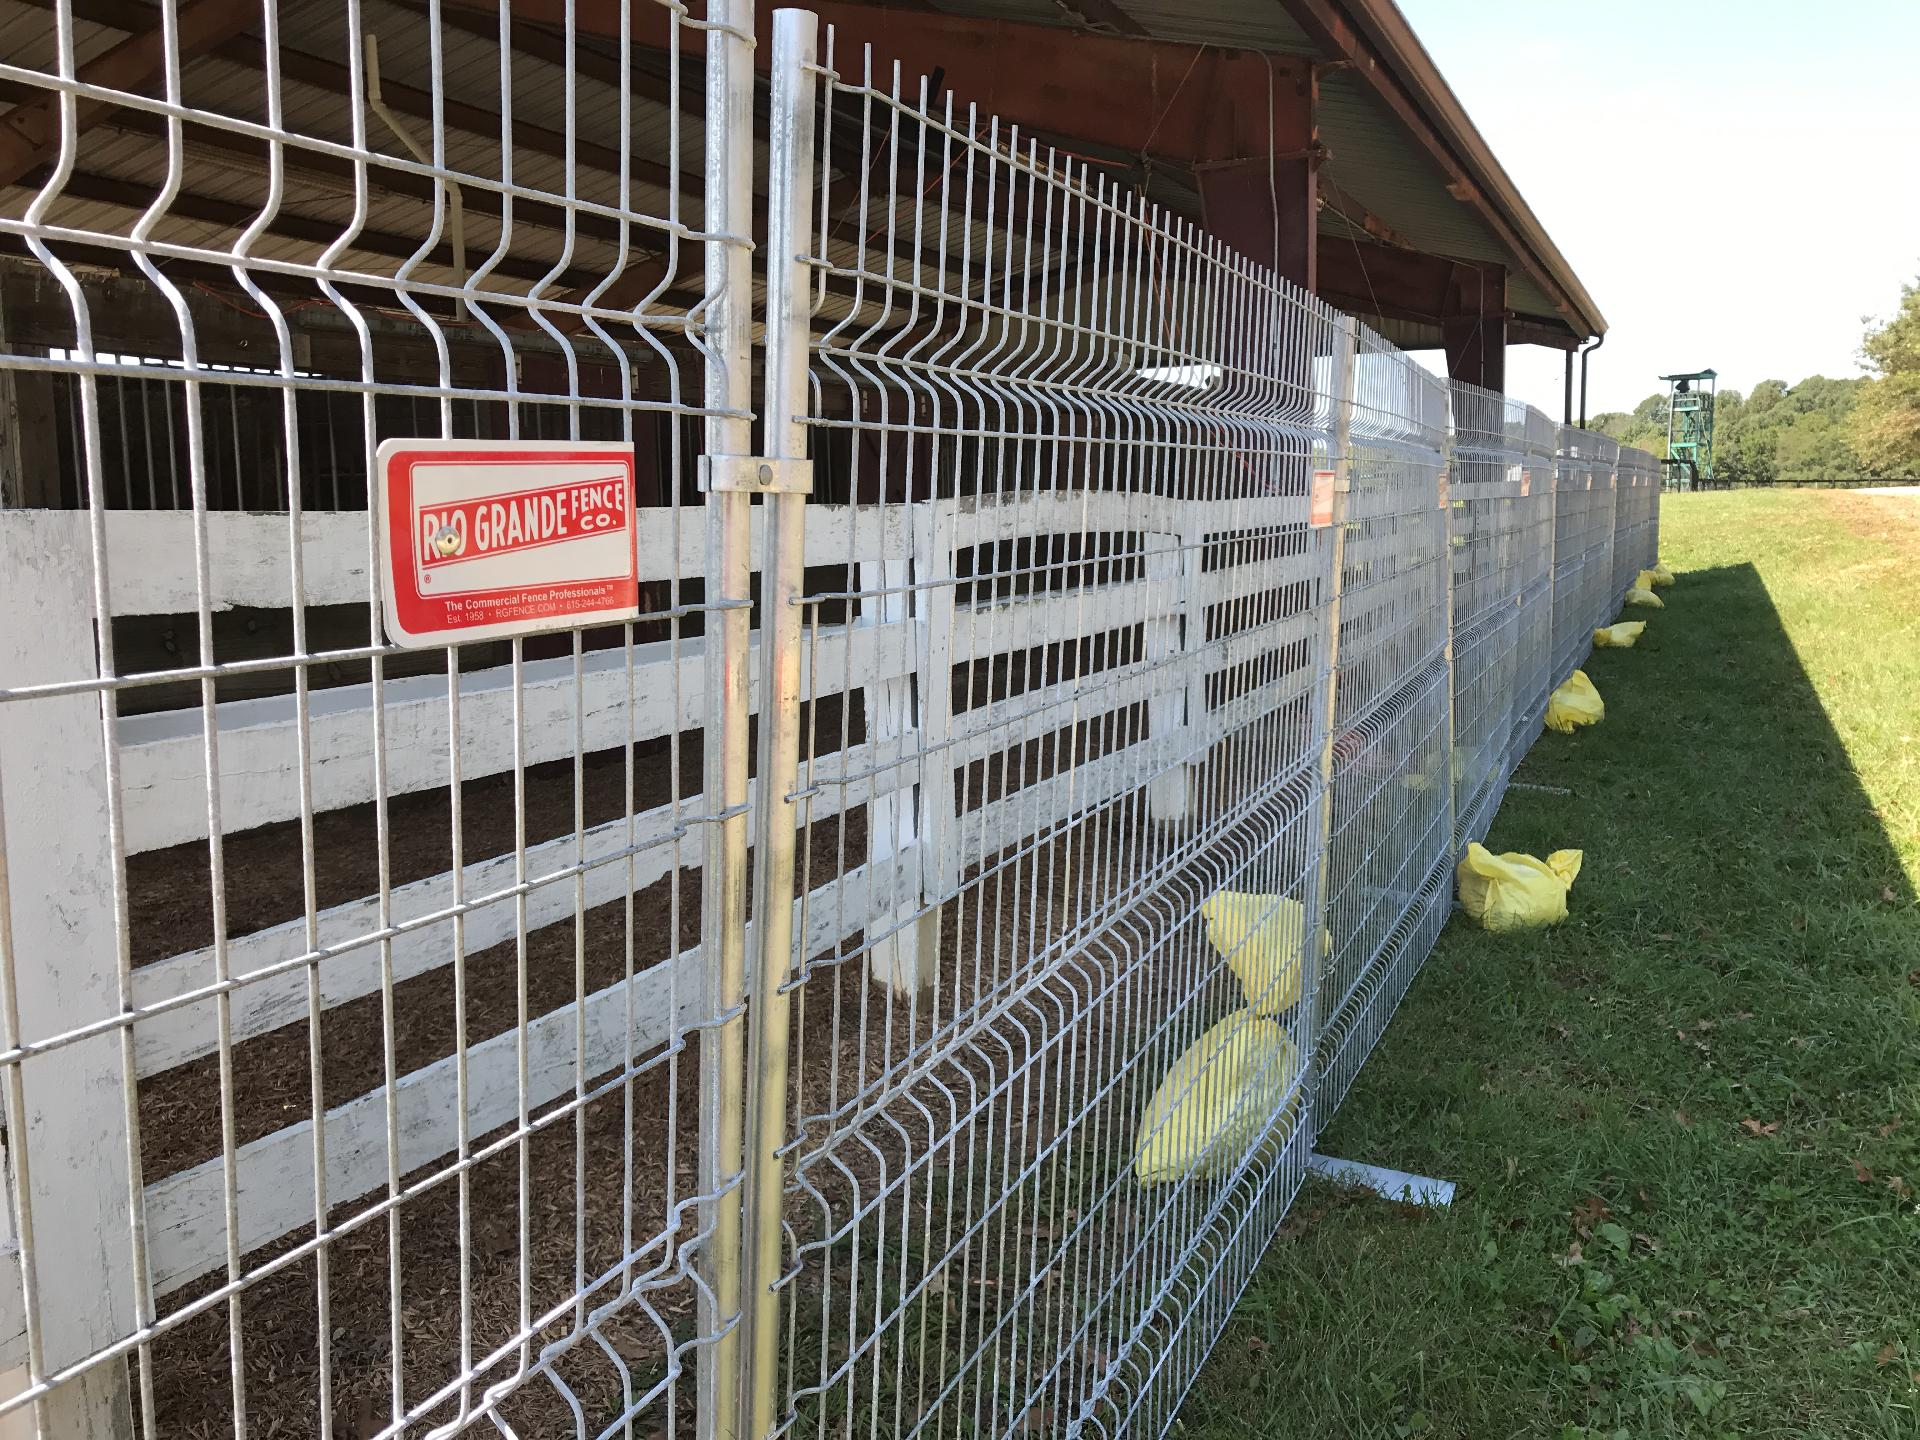 Comely Welded Wire Fence Panels Rental Fencing Bowling Green Murfreesboro Tn Rio Welded Wire Fence 6 Ft Welded Wire Fence Installation houzz-02 Welded Wire Fence